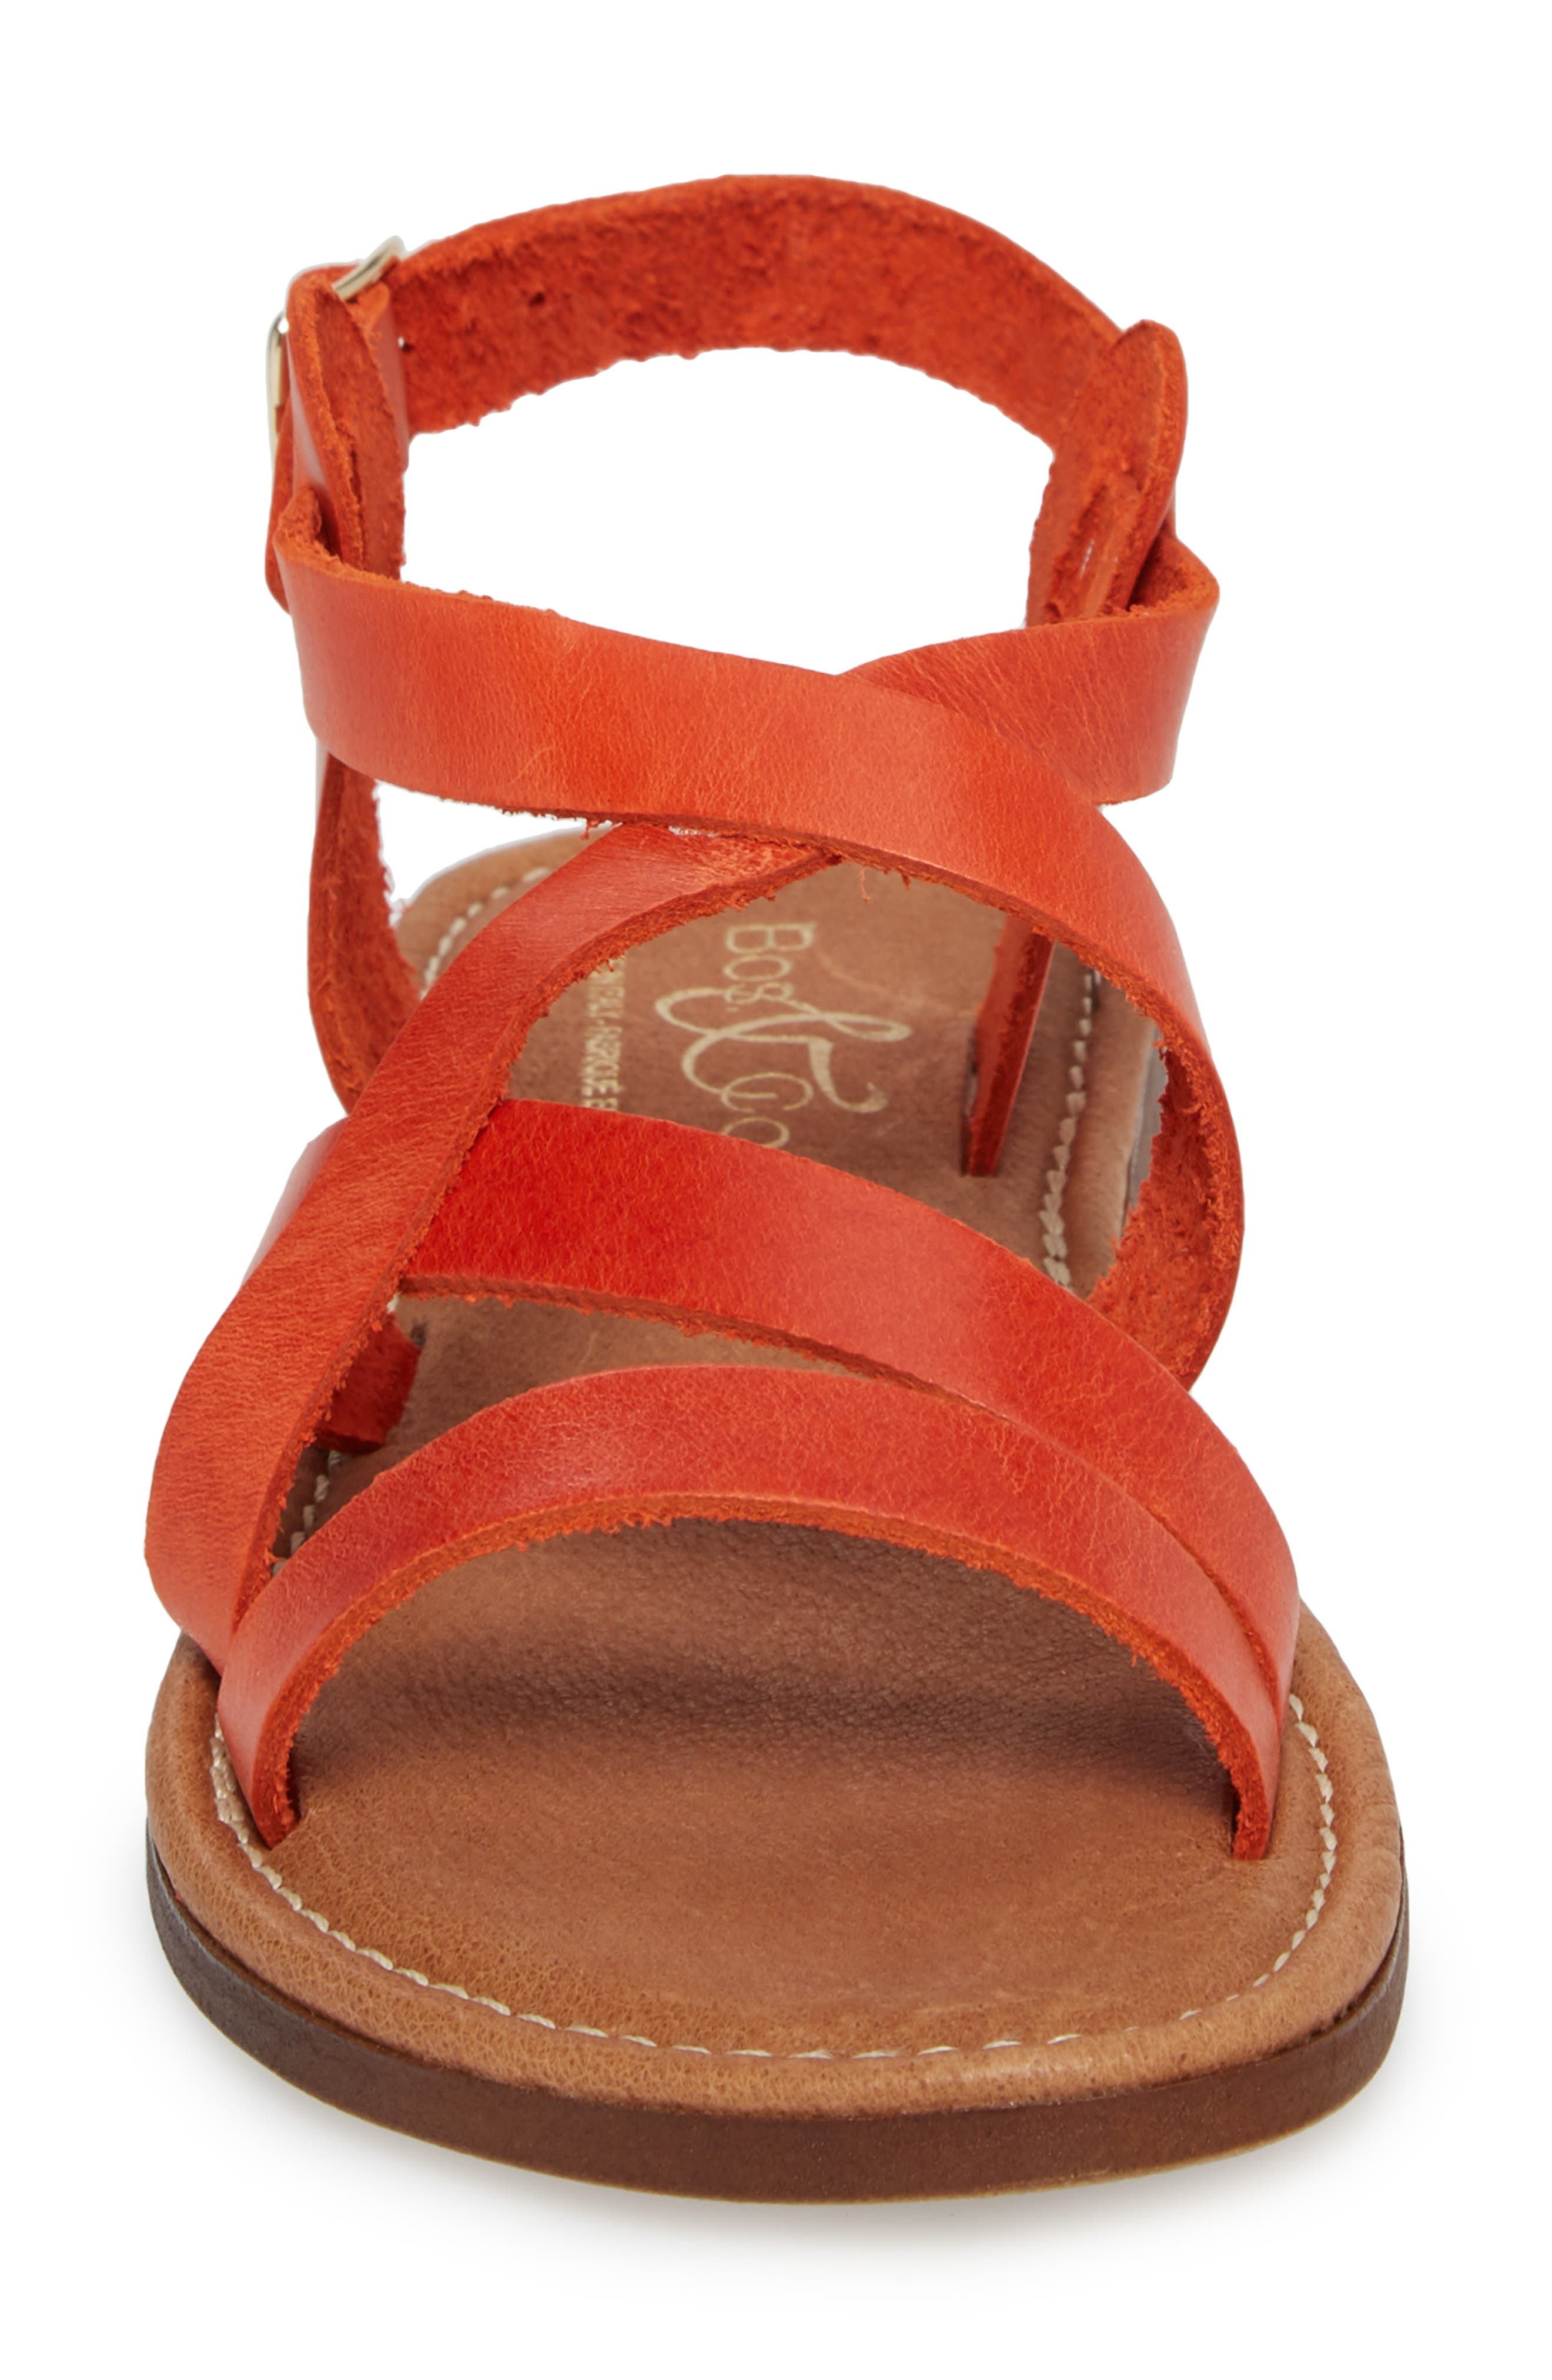 Ionna Sandal,                             Alternate thumbnail 4, color,                             Tangerine Leather